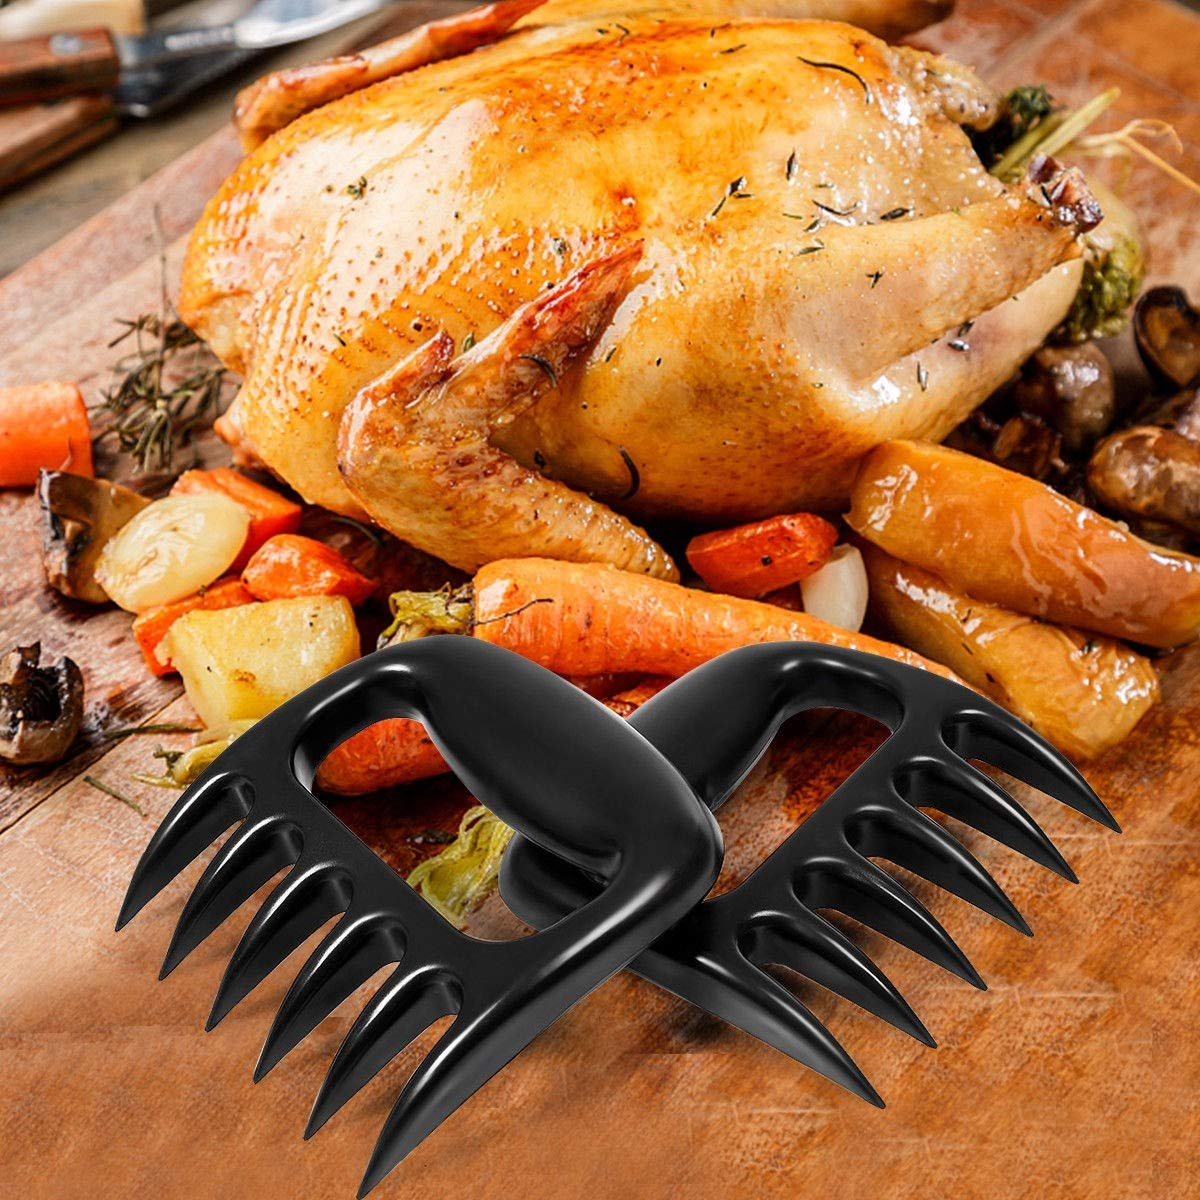 New Shred and Cut Meats Handle Essential for BBQ Pros King77777 BBQ Meat Claws Pull Handler Easily Lift Ultra-Sharp